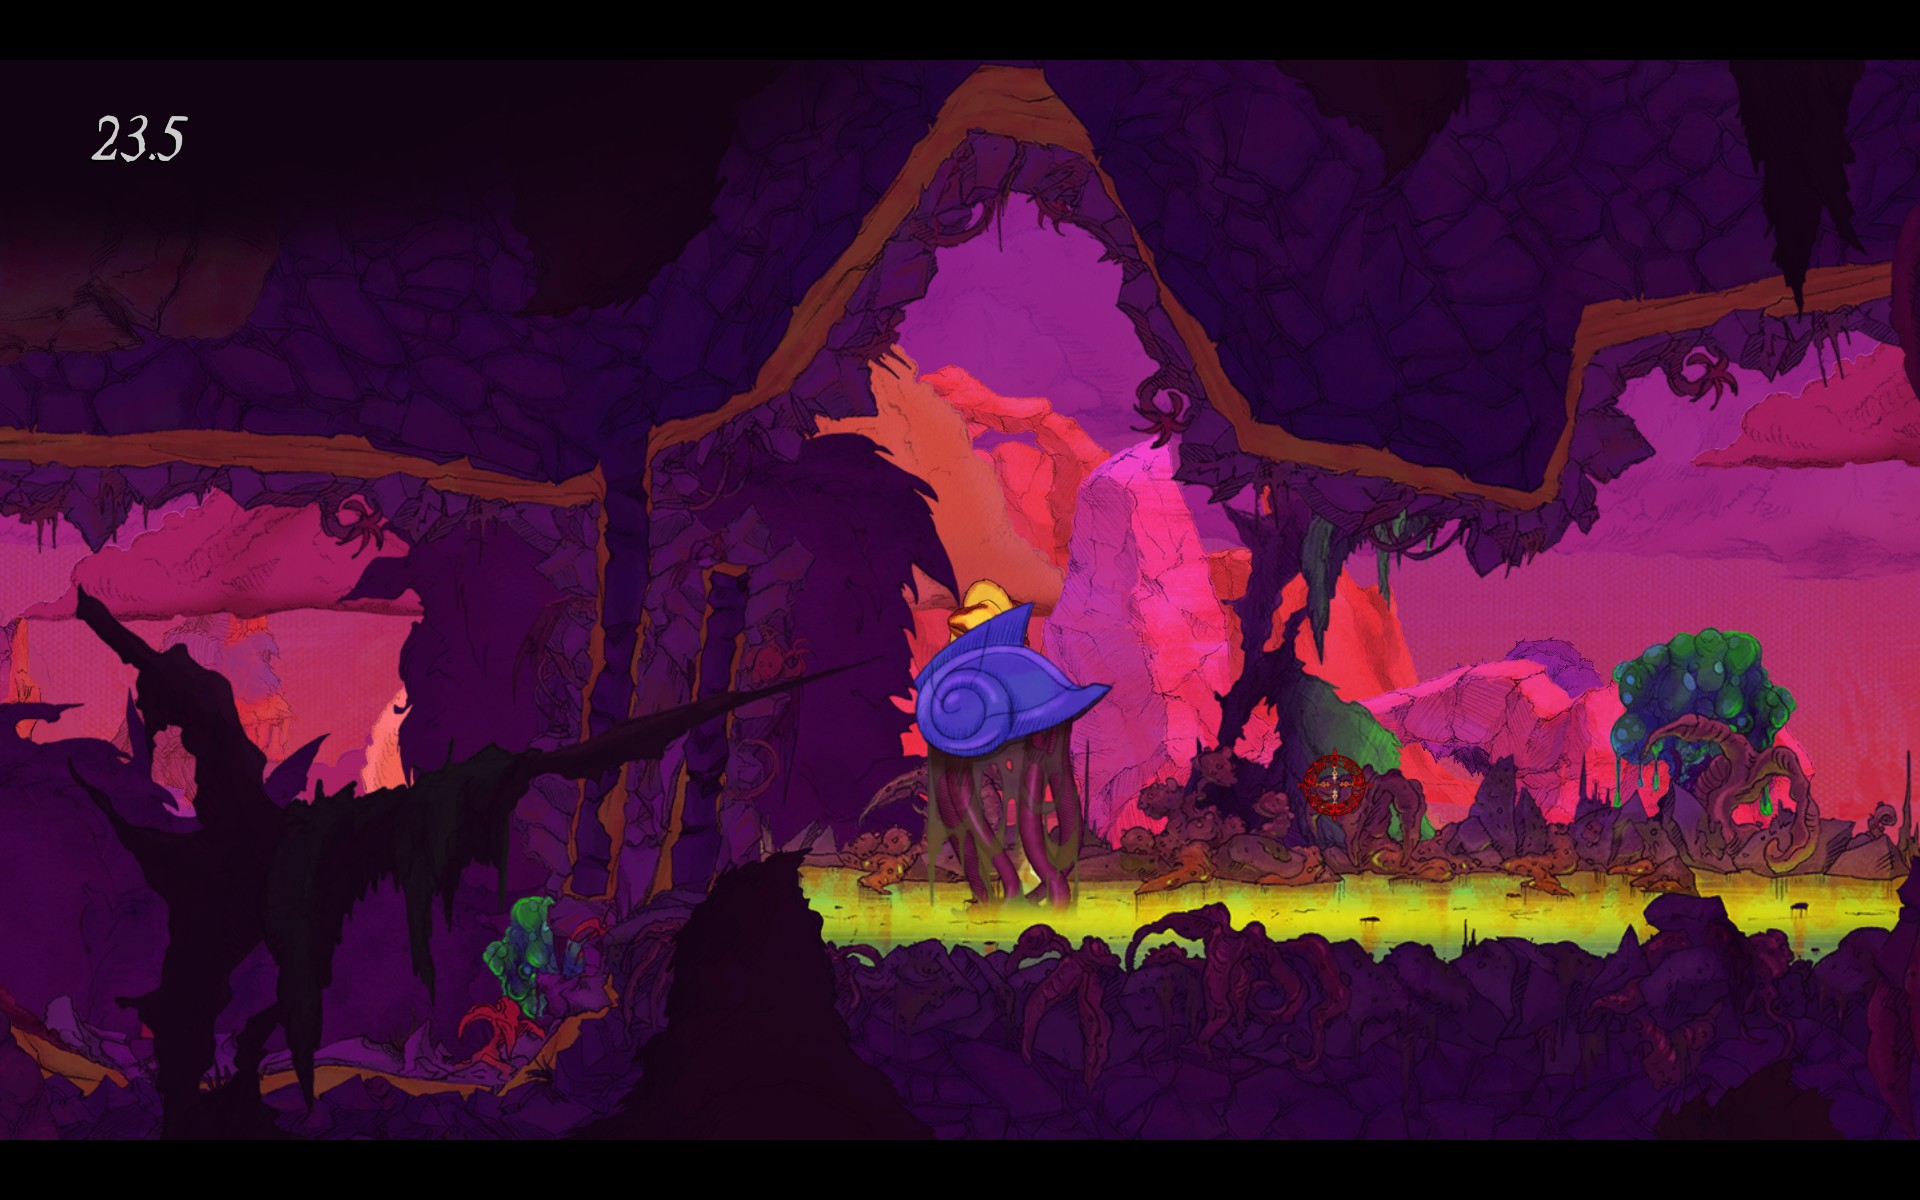 There are some funky, trip-induced levels and I love the vivid use of colors. If nothing else, this game looks beautiful. Creepy and deadly... but still beautiful.